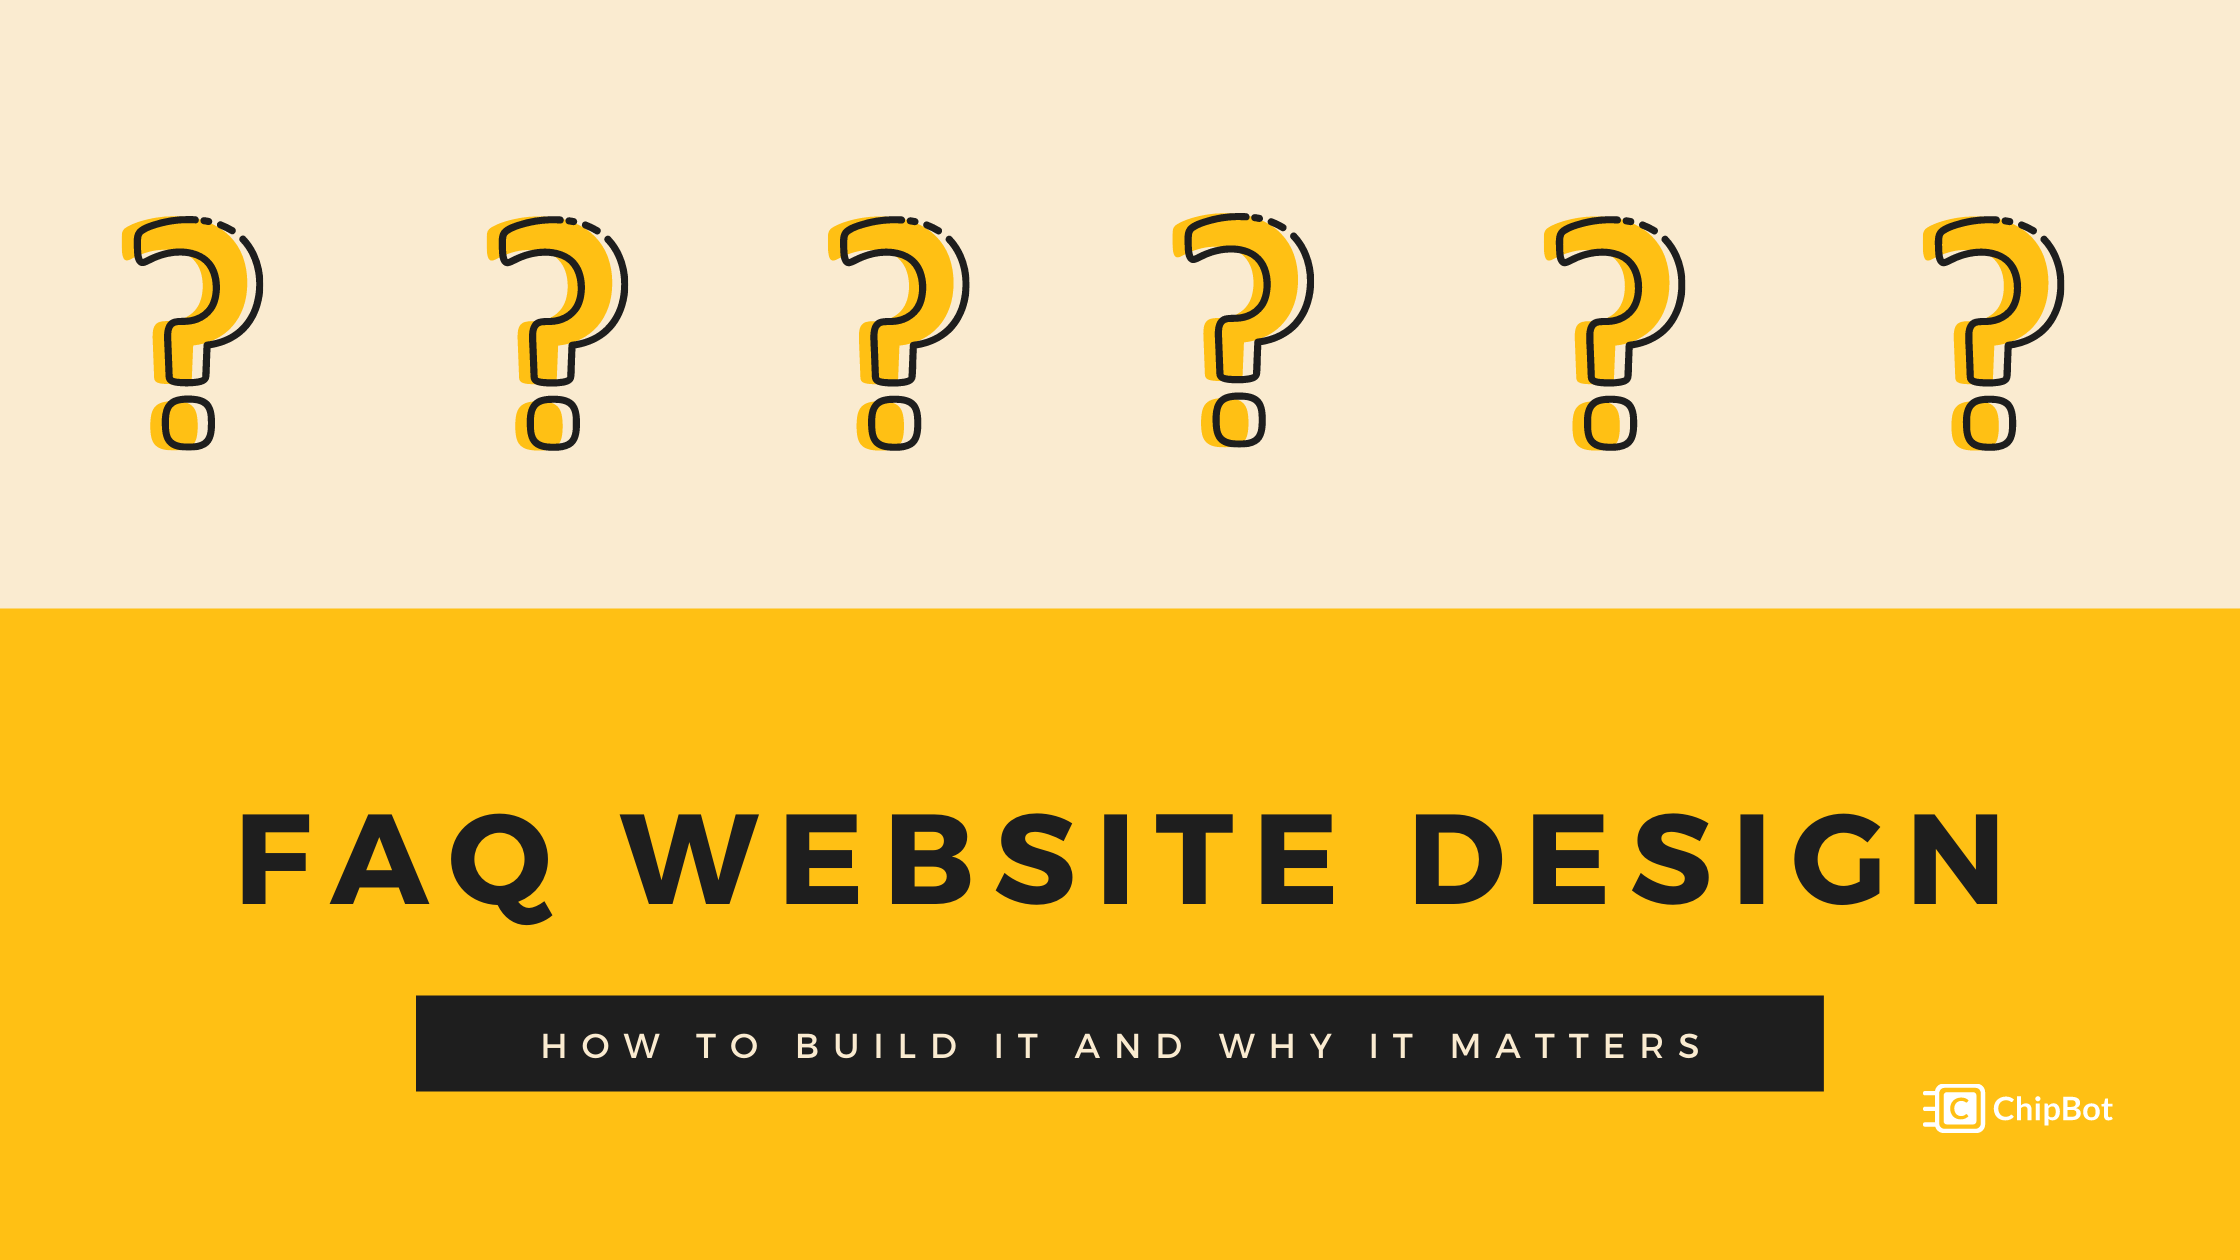 Your FAQ Website Design: How to Build it and Why it Matters